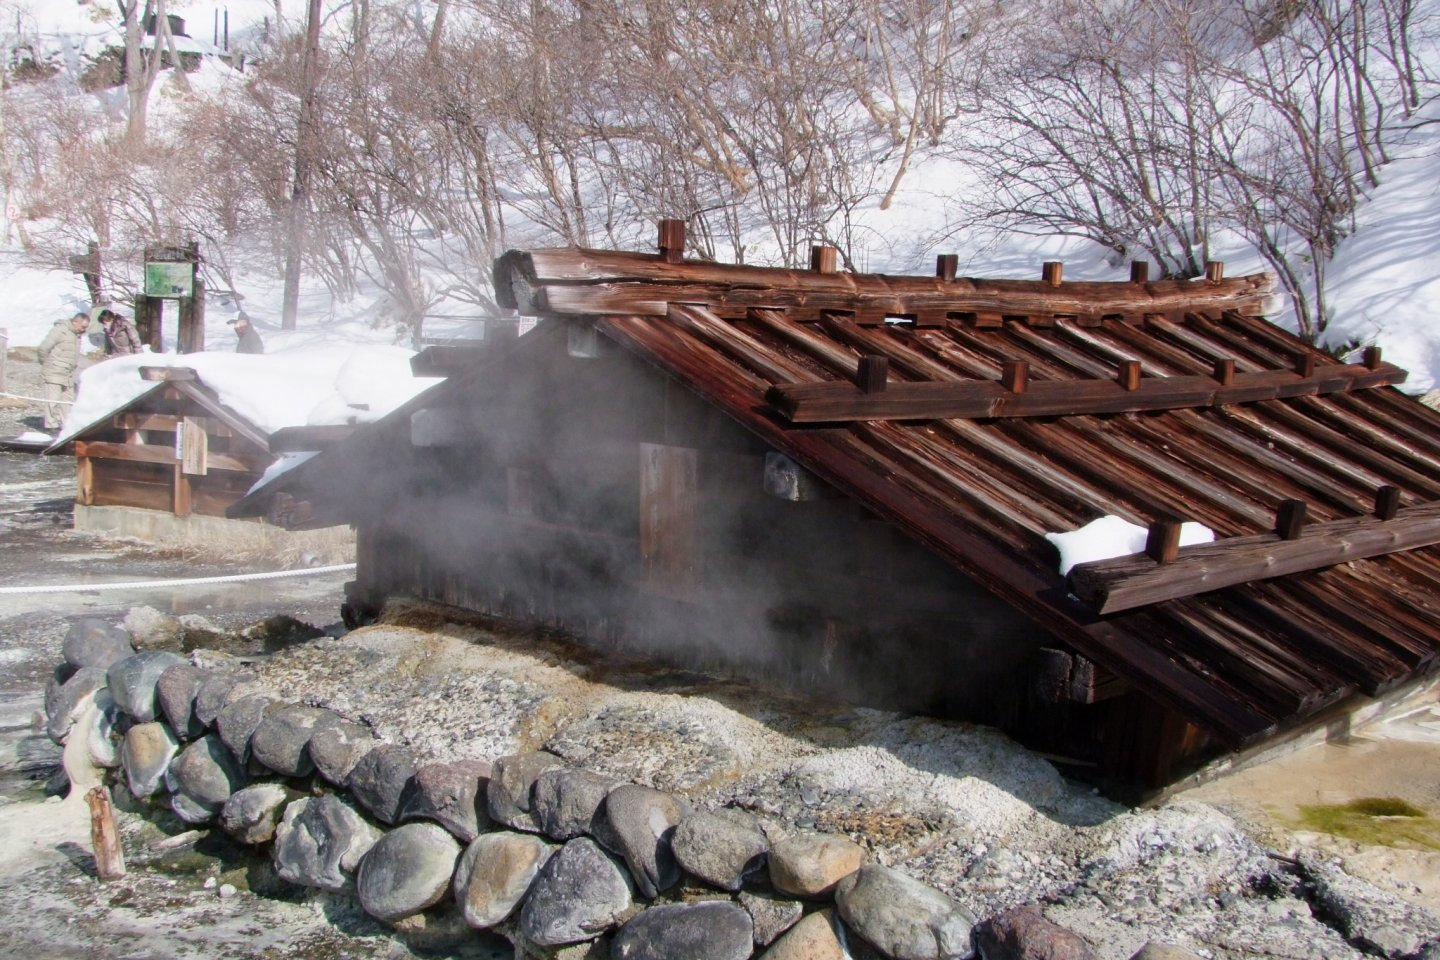 Steam pouring out of the huts